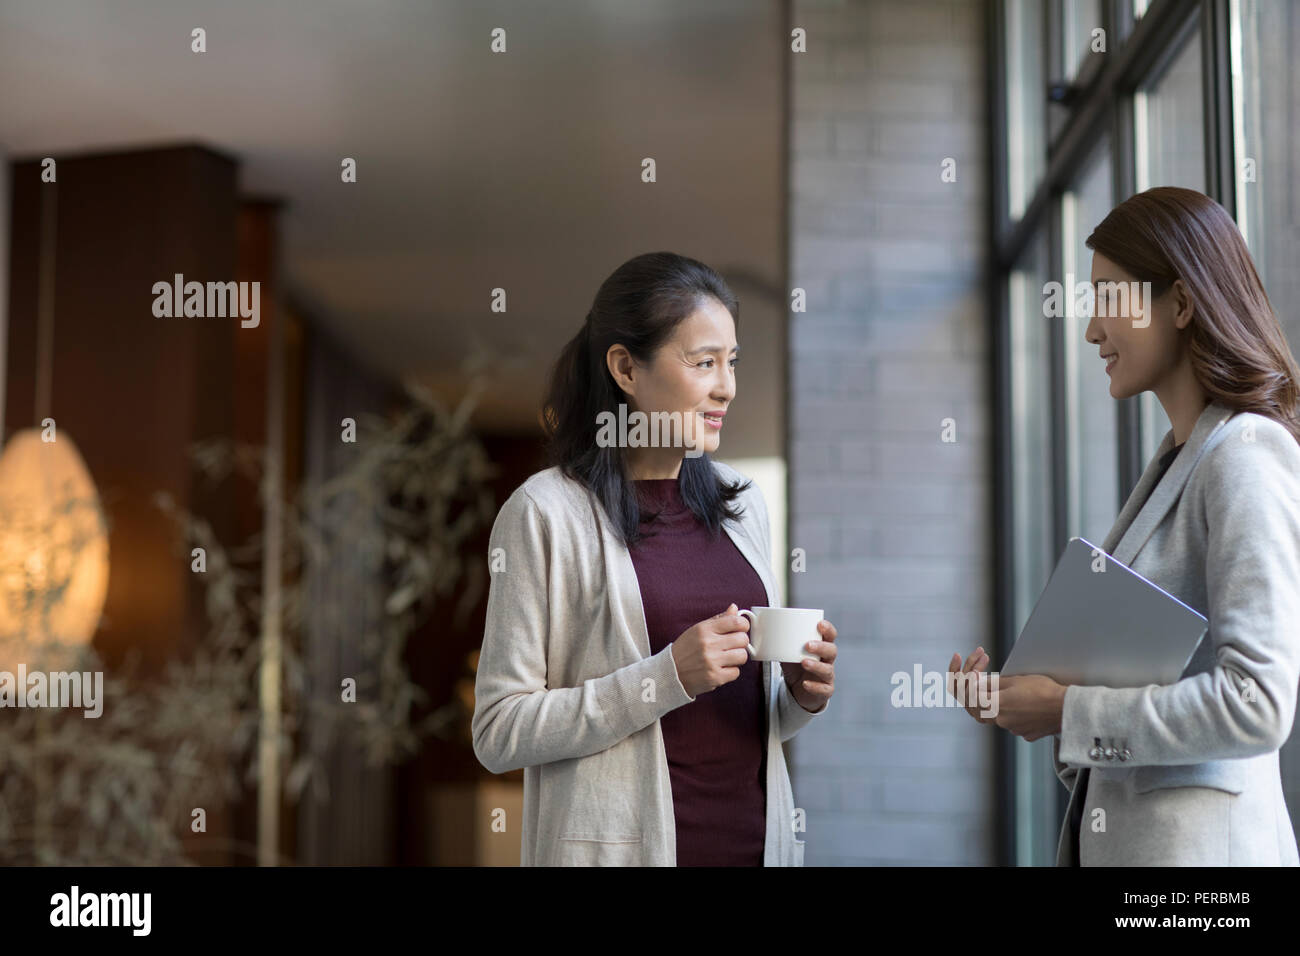 Elegance mature woman talking with young businesswoman - Stock Image